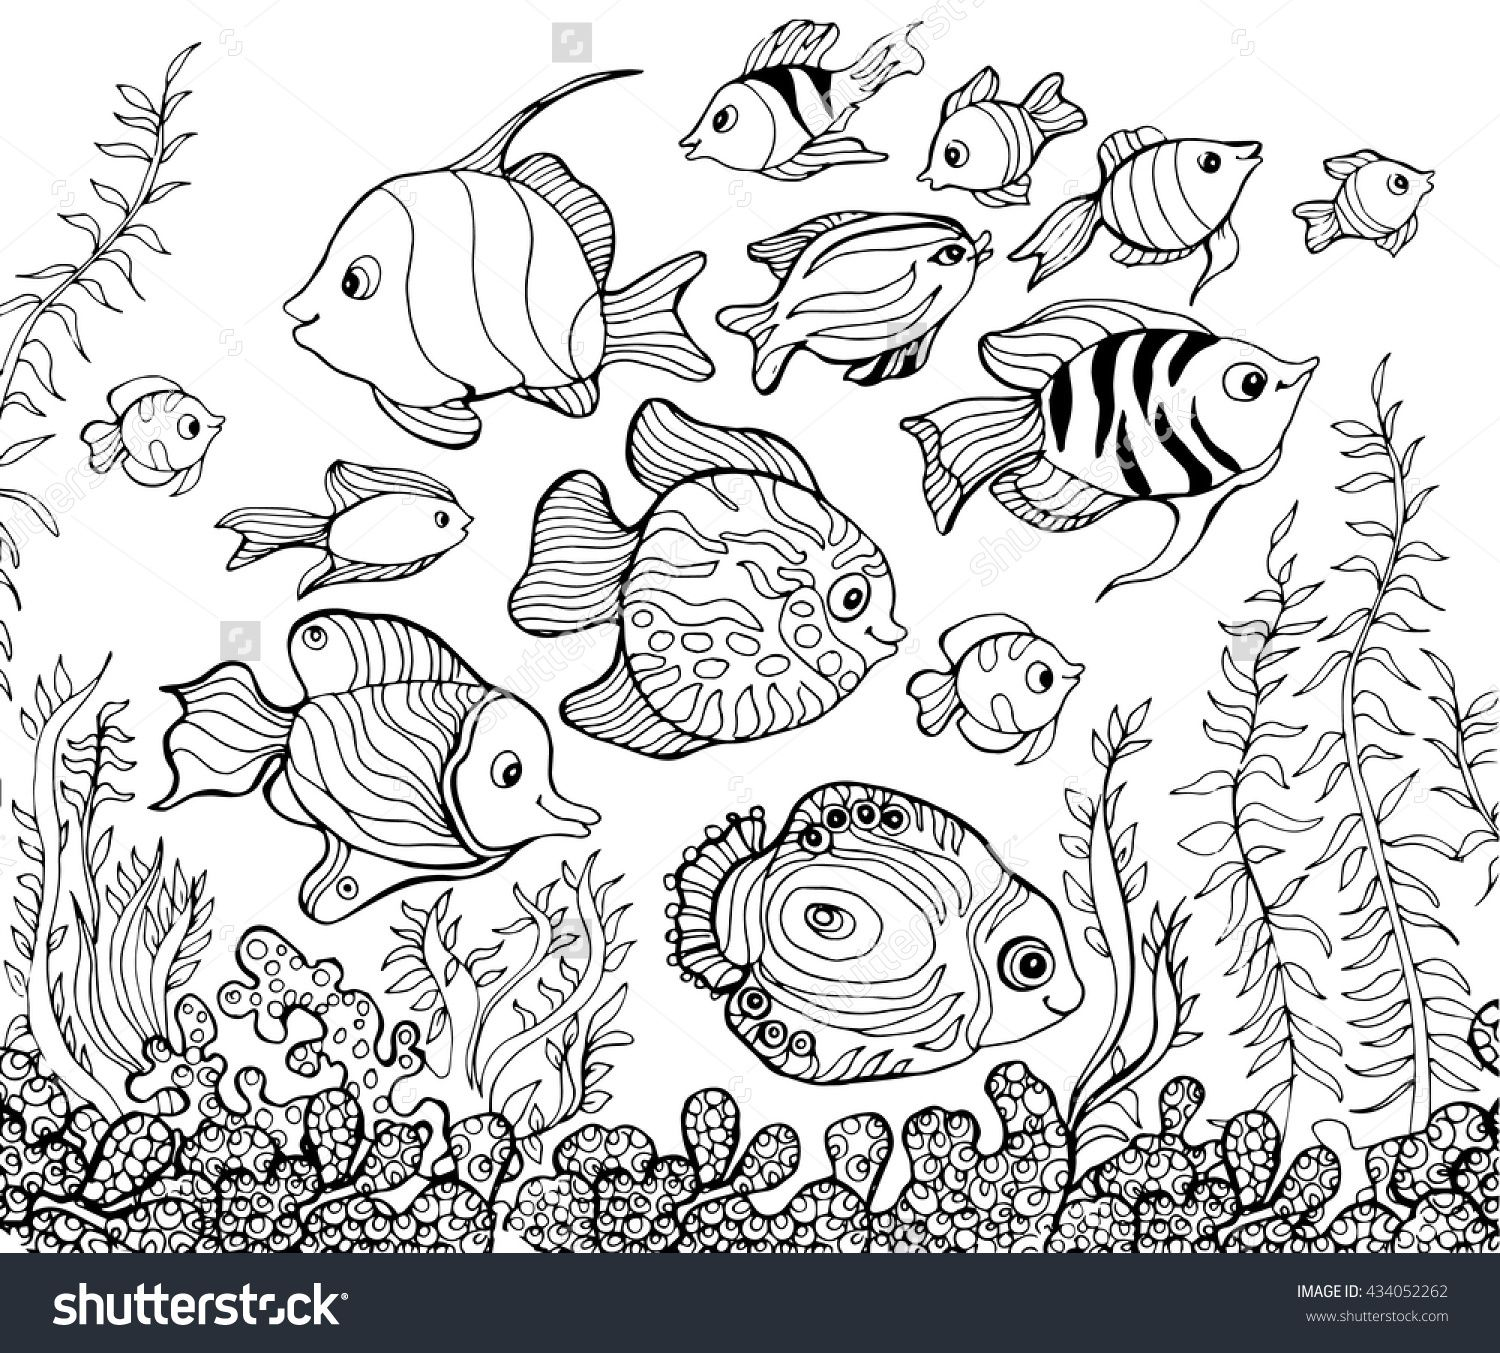 outline drawing, underwater,fish.coloring pages for kids. | Color me ...